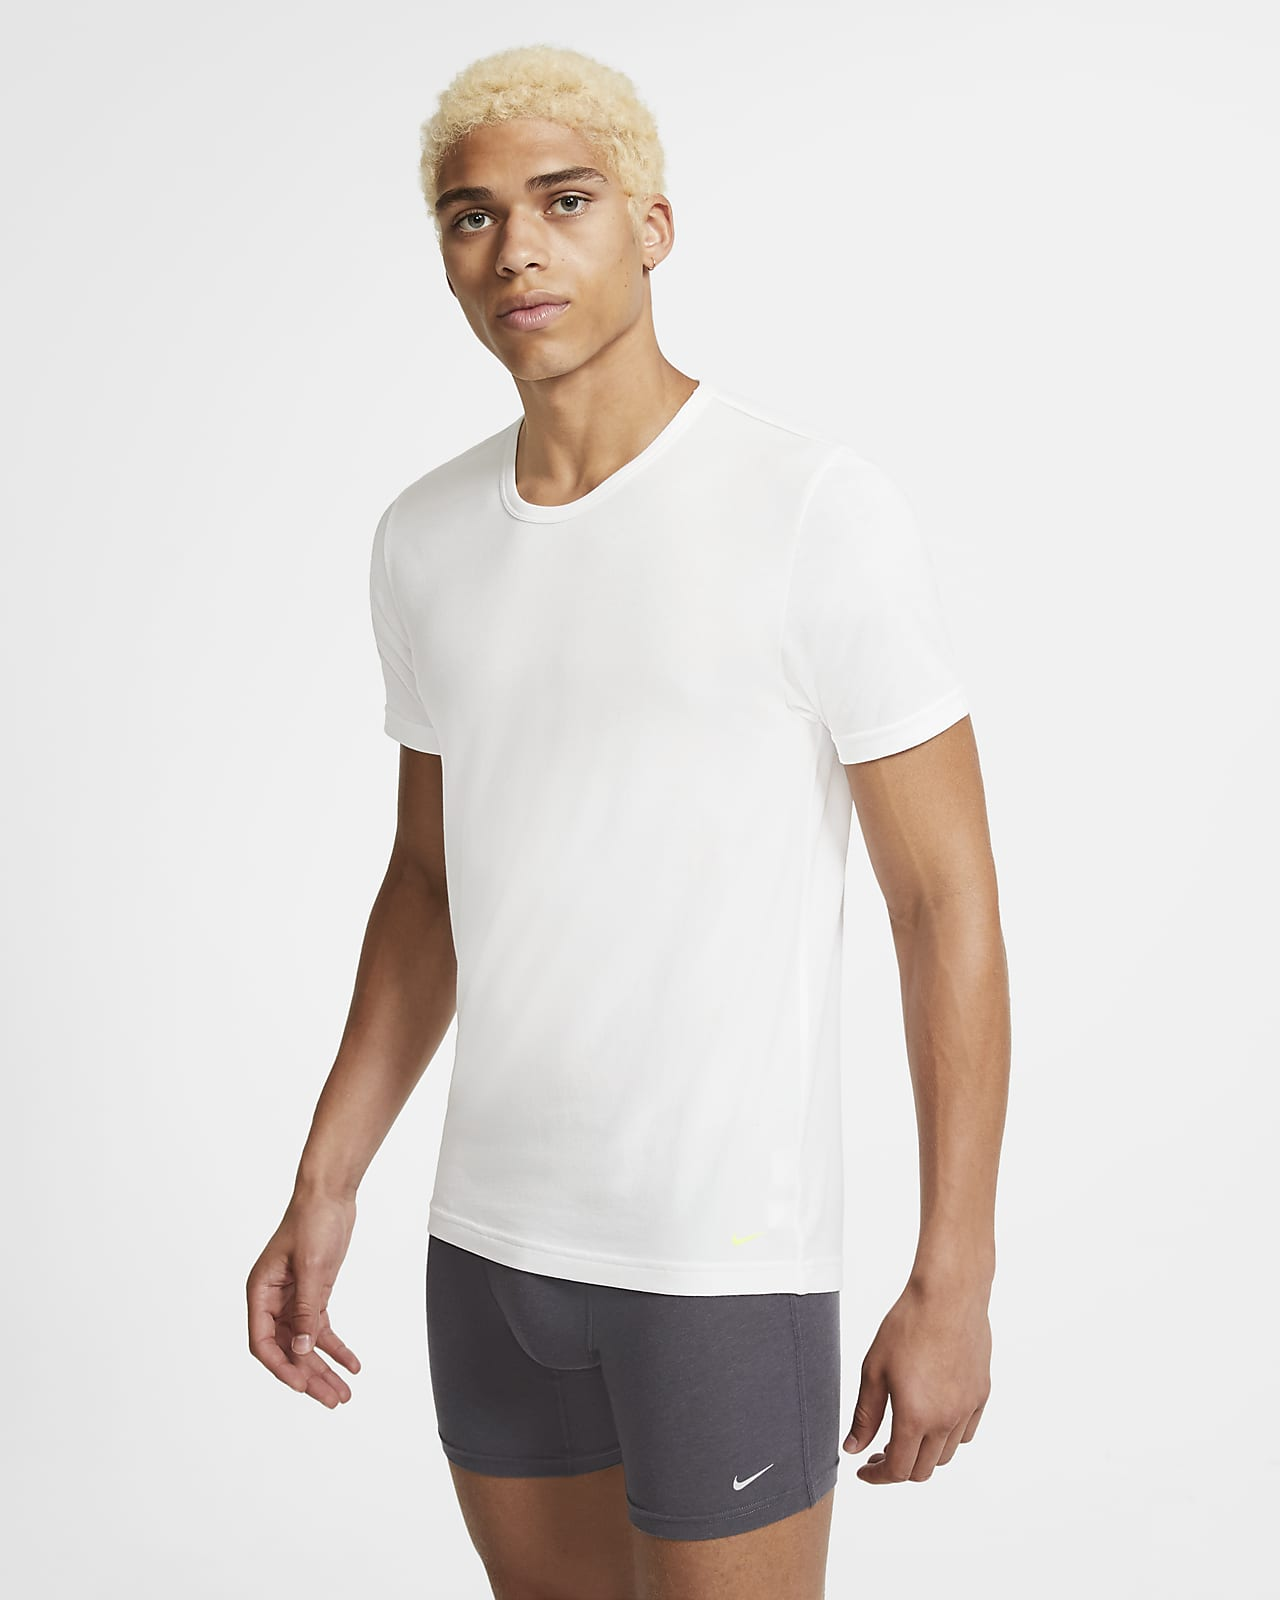 Nike Luxe Cotton Modal Men's Slim Fit Crew-Neck Undershirt (2-Pack)